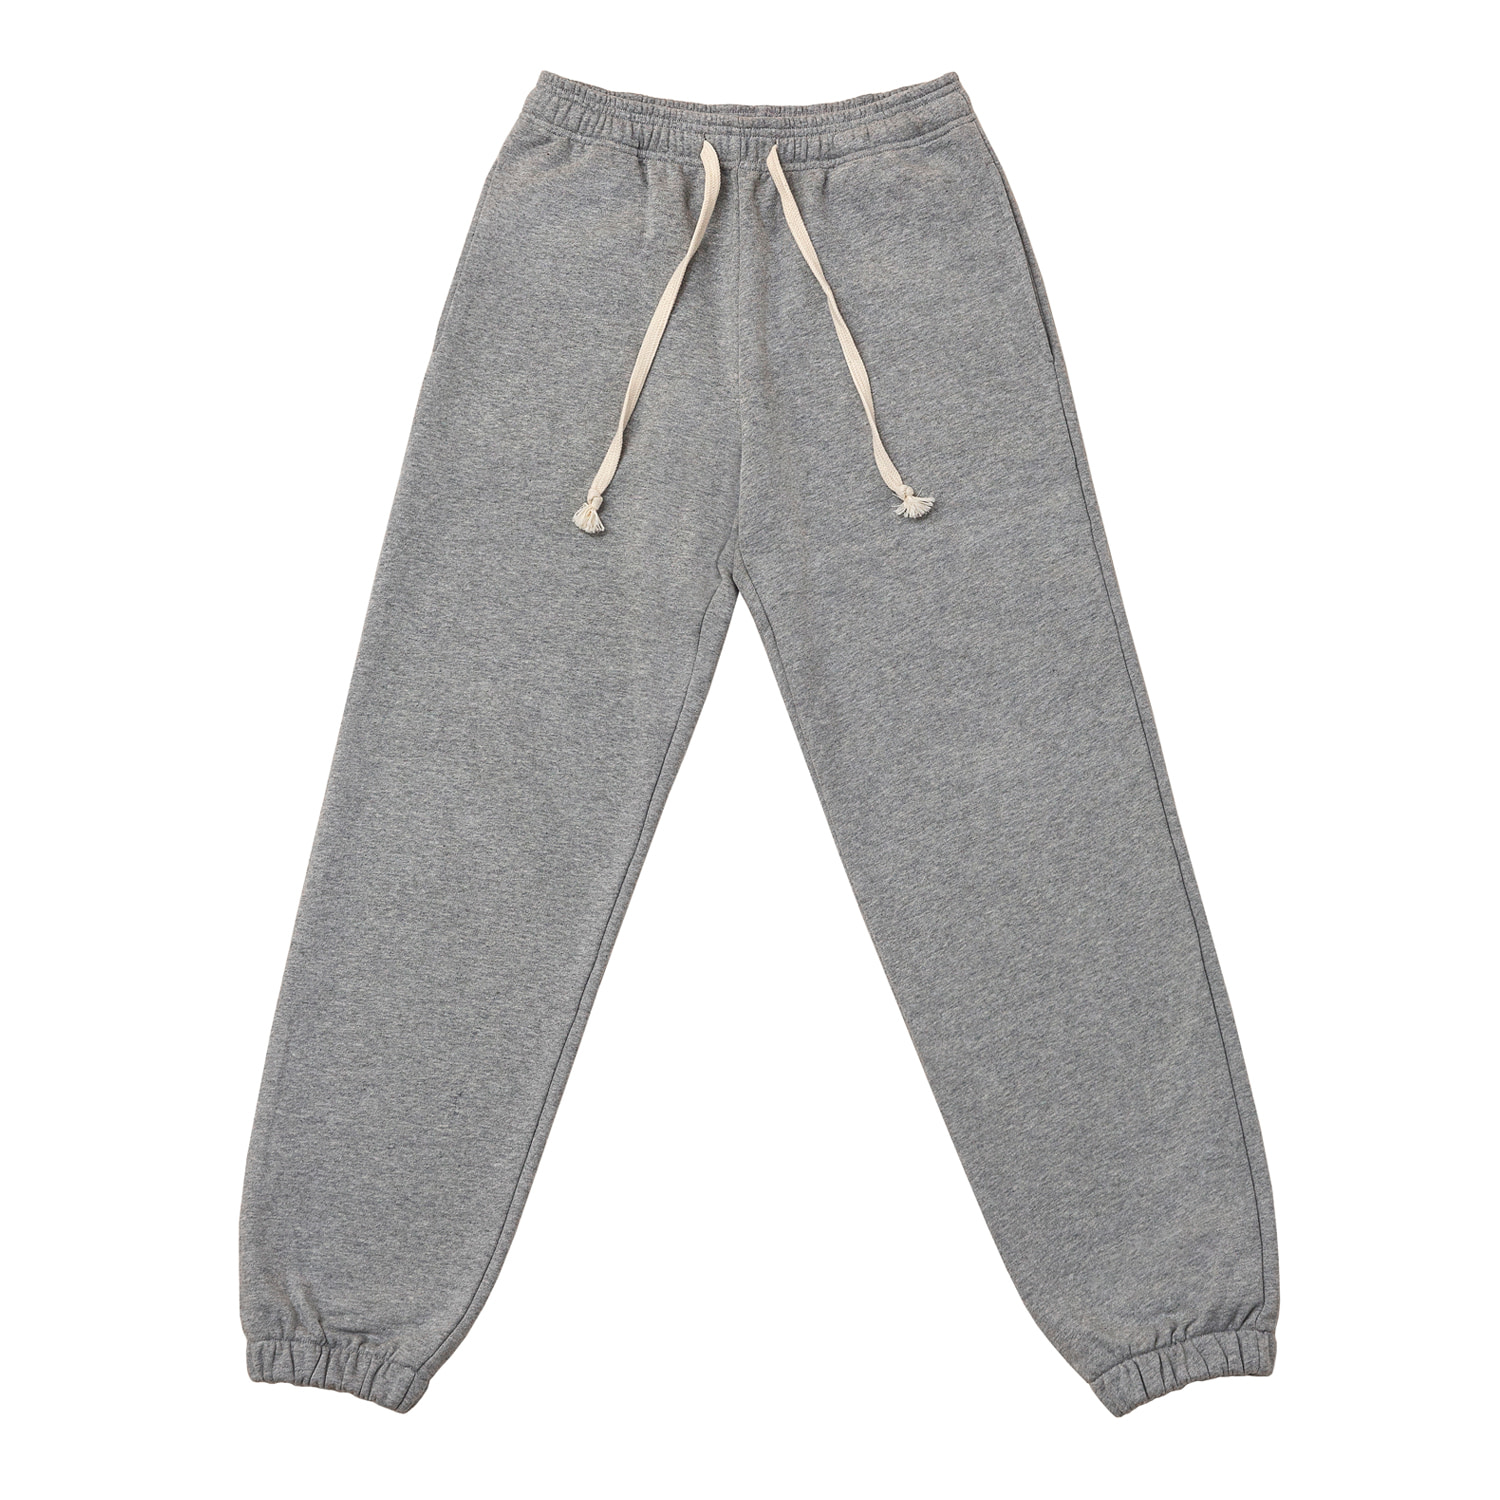 2nd RE) ORE COTTON 005 jogger PT M.Grey